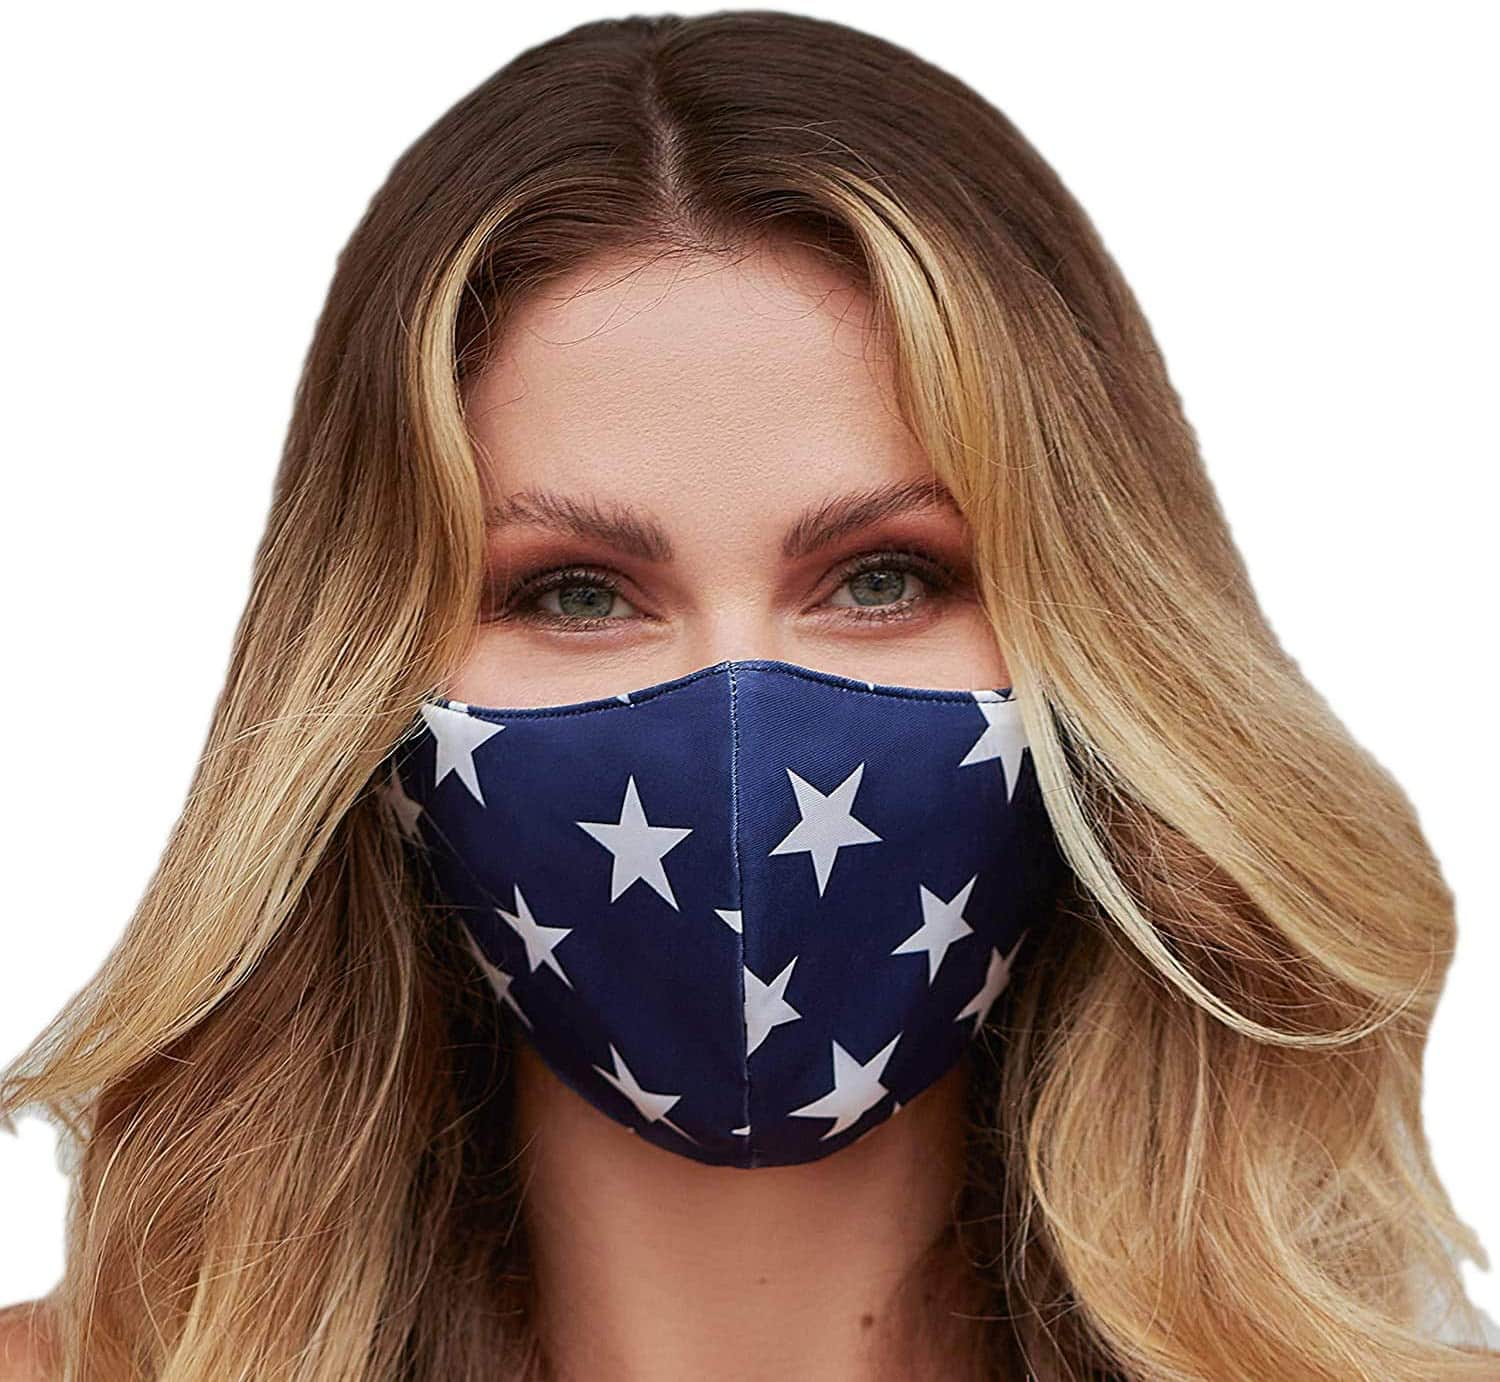 This lightweight face mask is suitable for cycling, running, shopping, bus, and subway